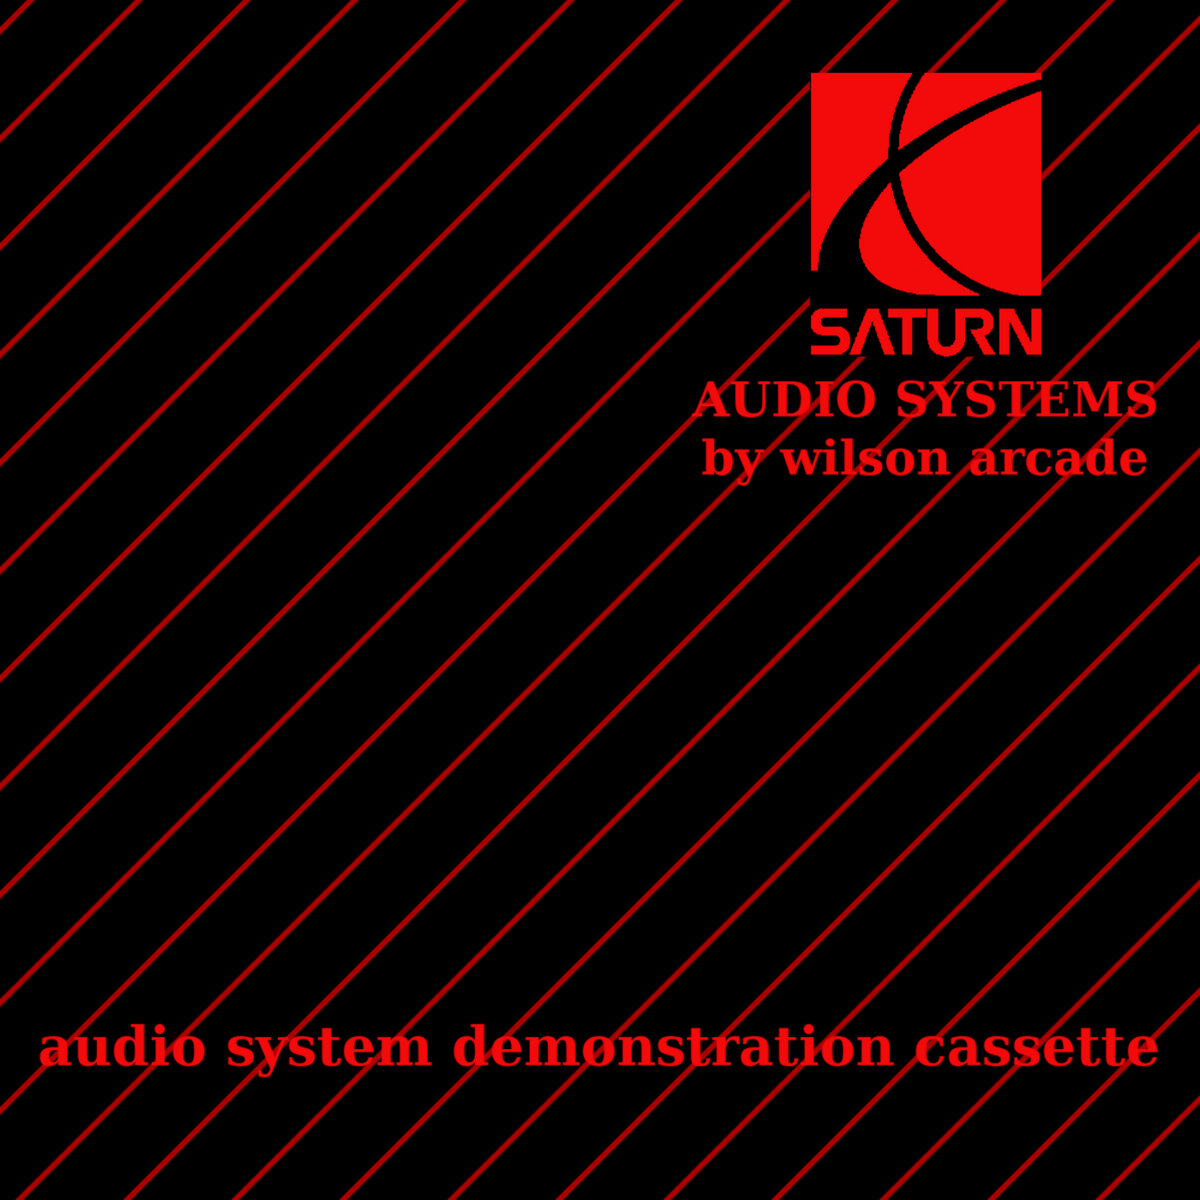 saturn audio system demonstration cassette 茨ヱめ畝ヹ cover